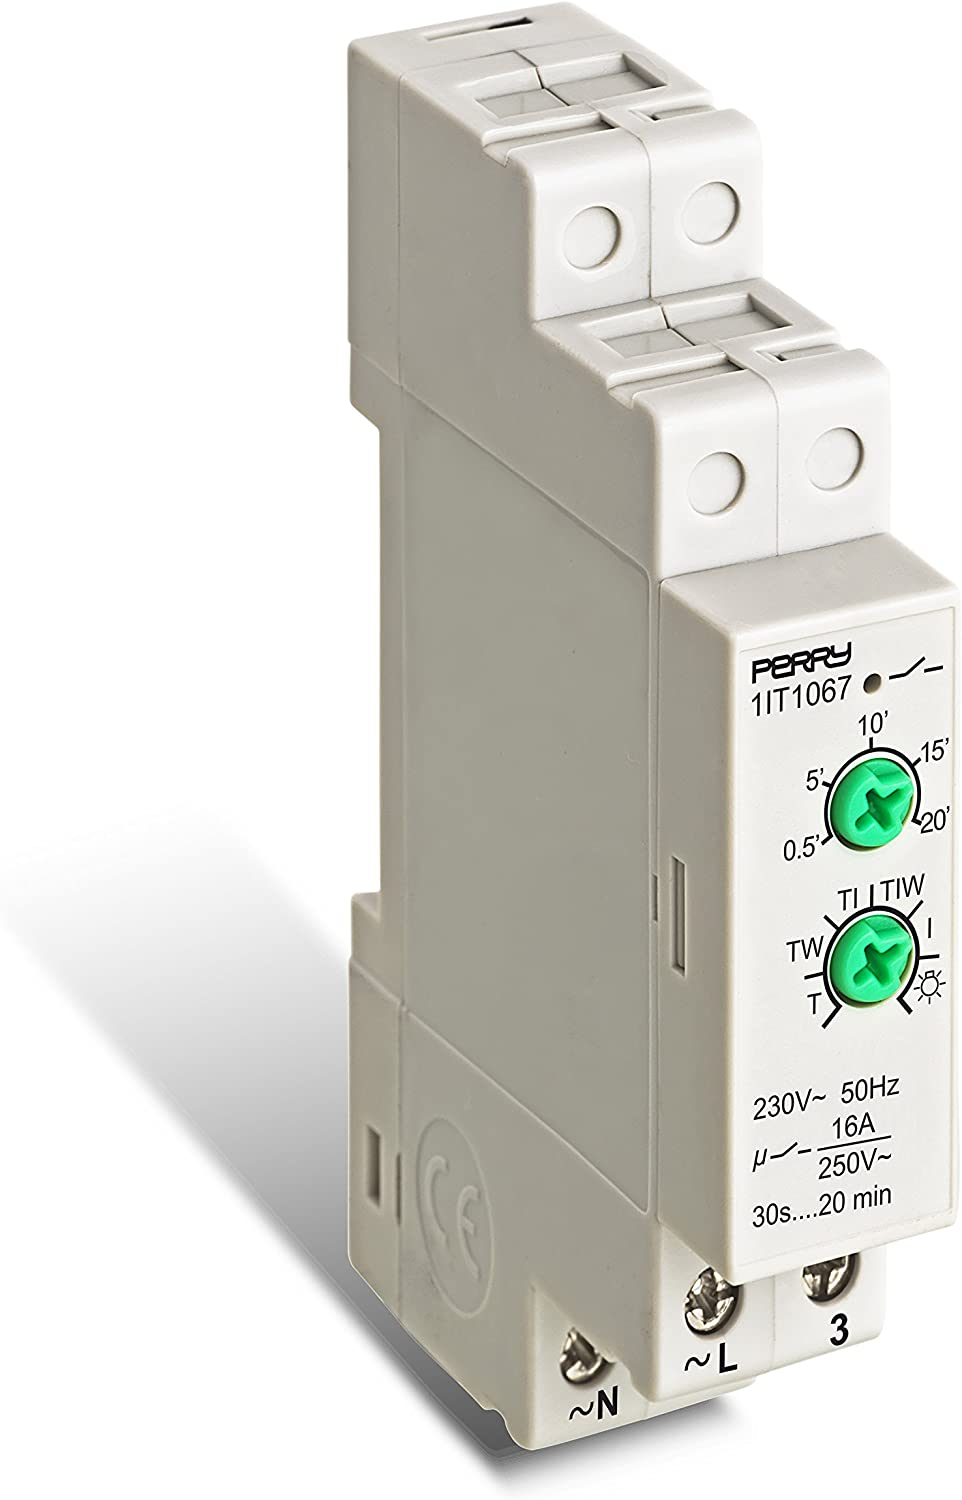 Perry 1IT1067 Interruptor Temporizado para Luces Escala, Blanco ...